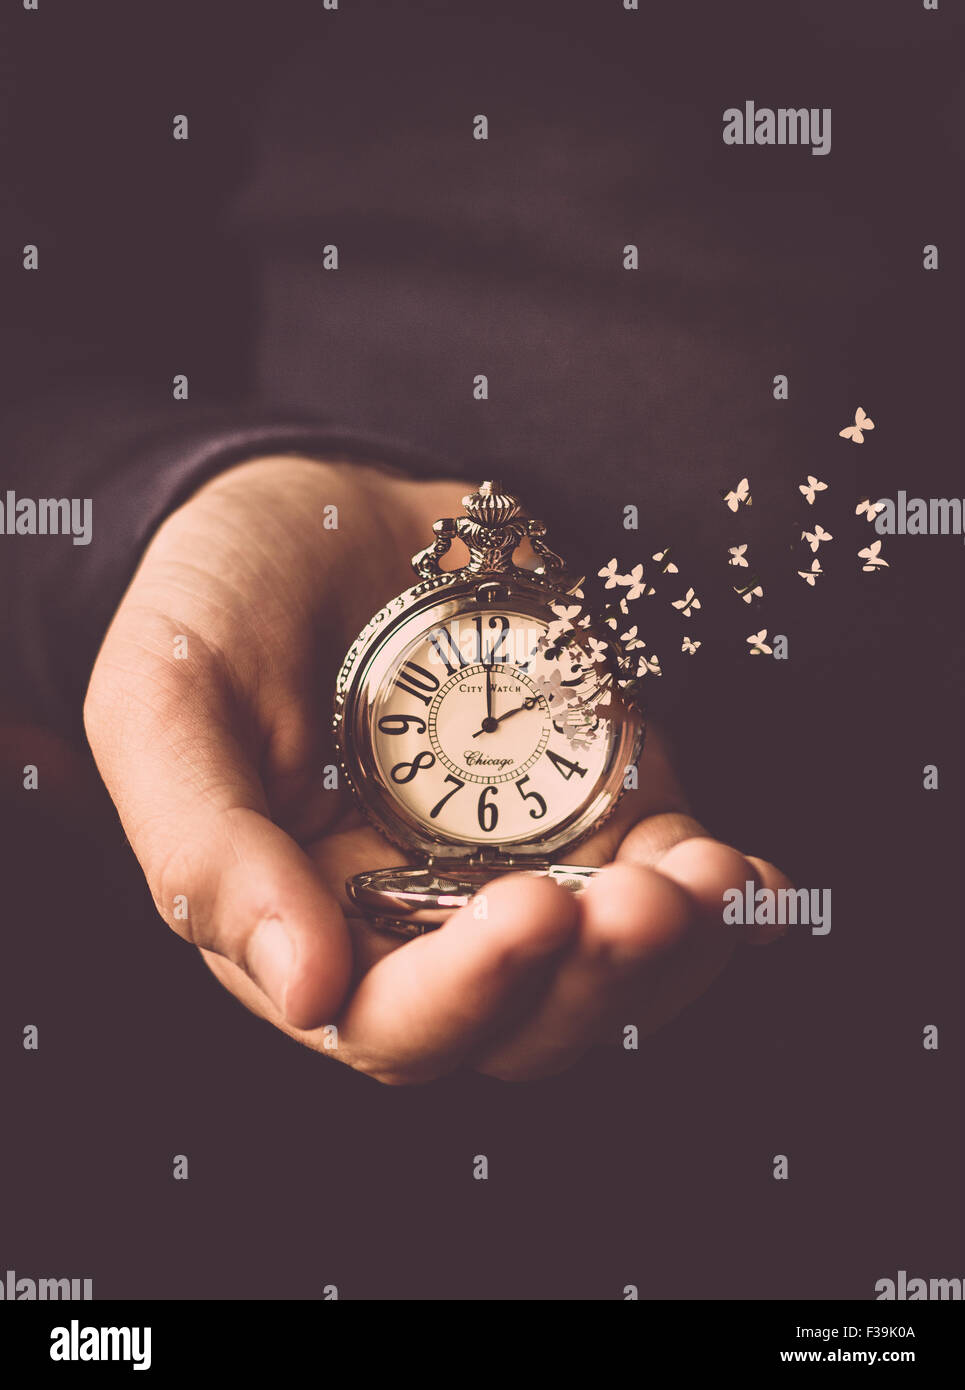 Man holding a watch in his hand with time flying off the clock face like butterflies Stock Foto